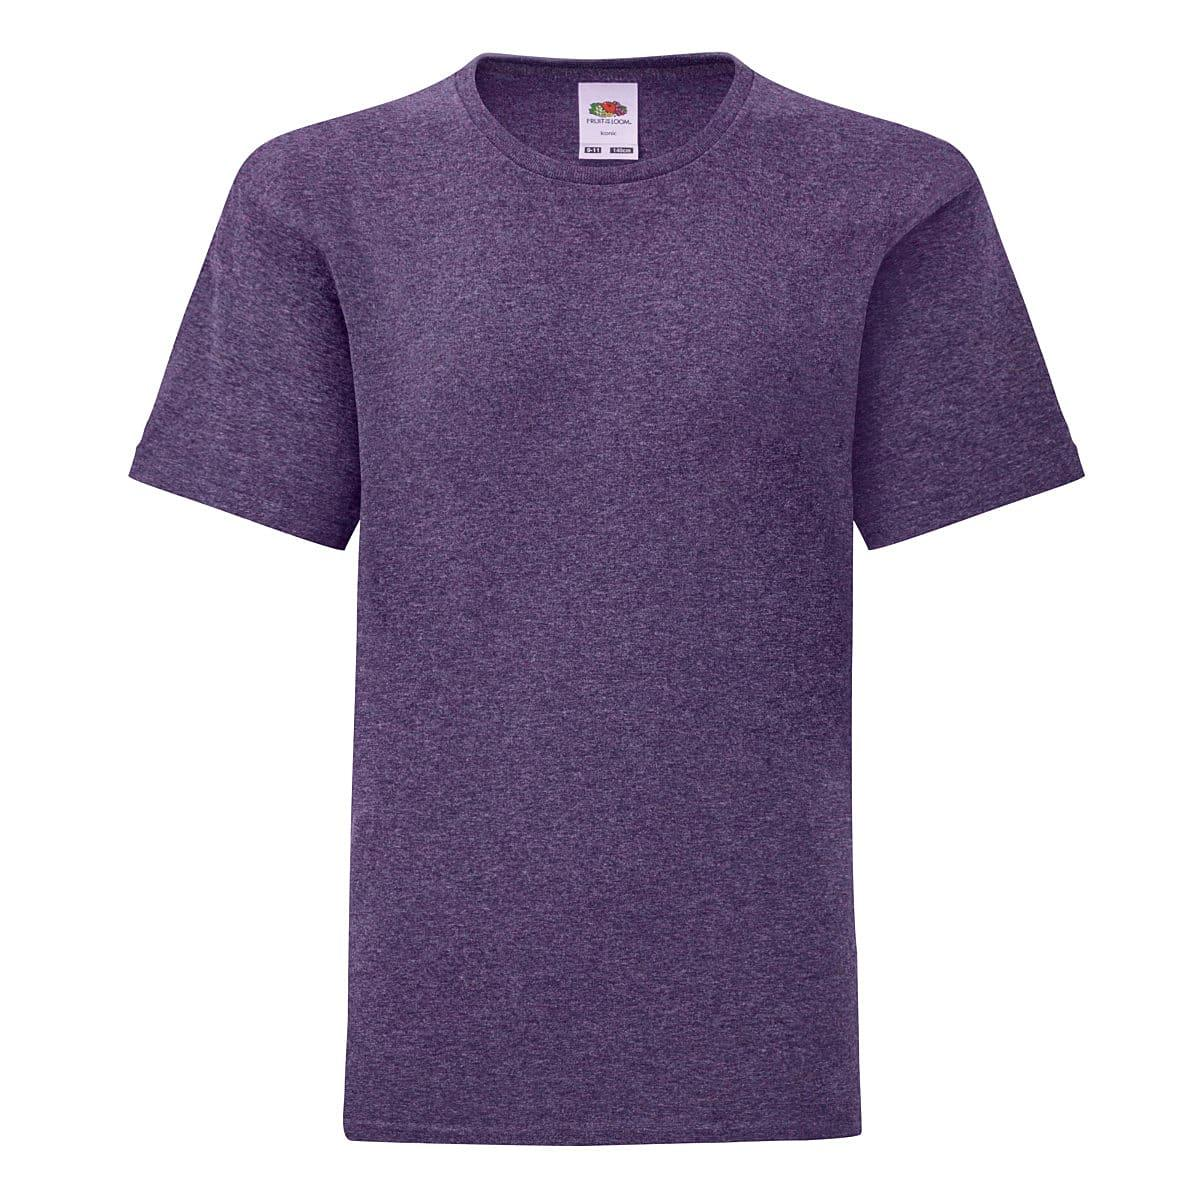 Fruit Of The Loom Kids Iconic T-Shirt in Heather Purple (Product Code: 61023)